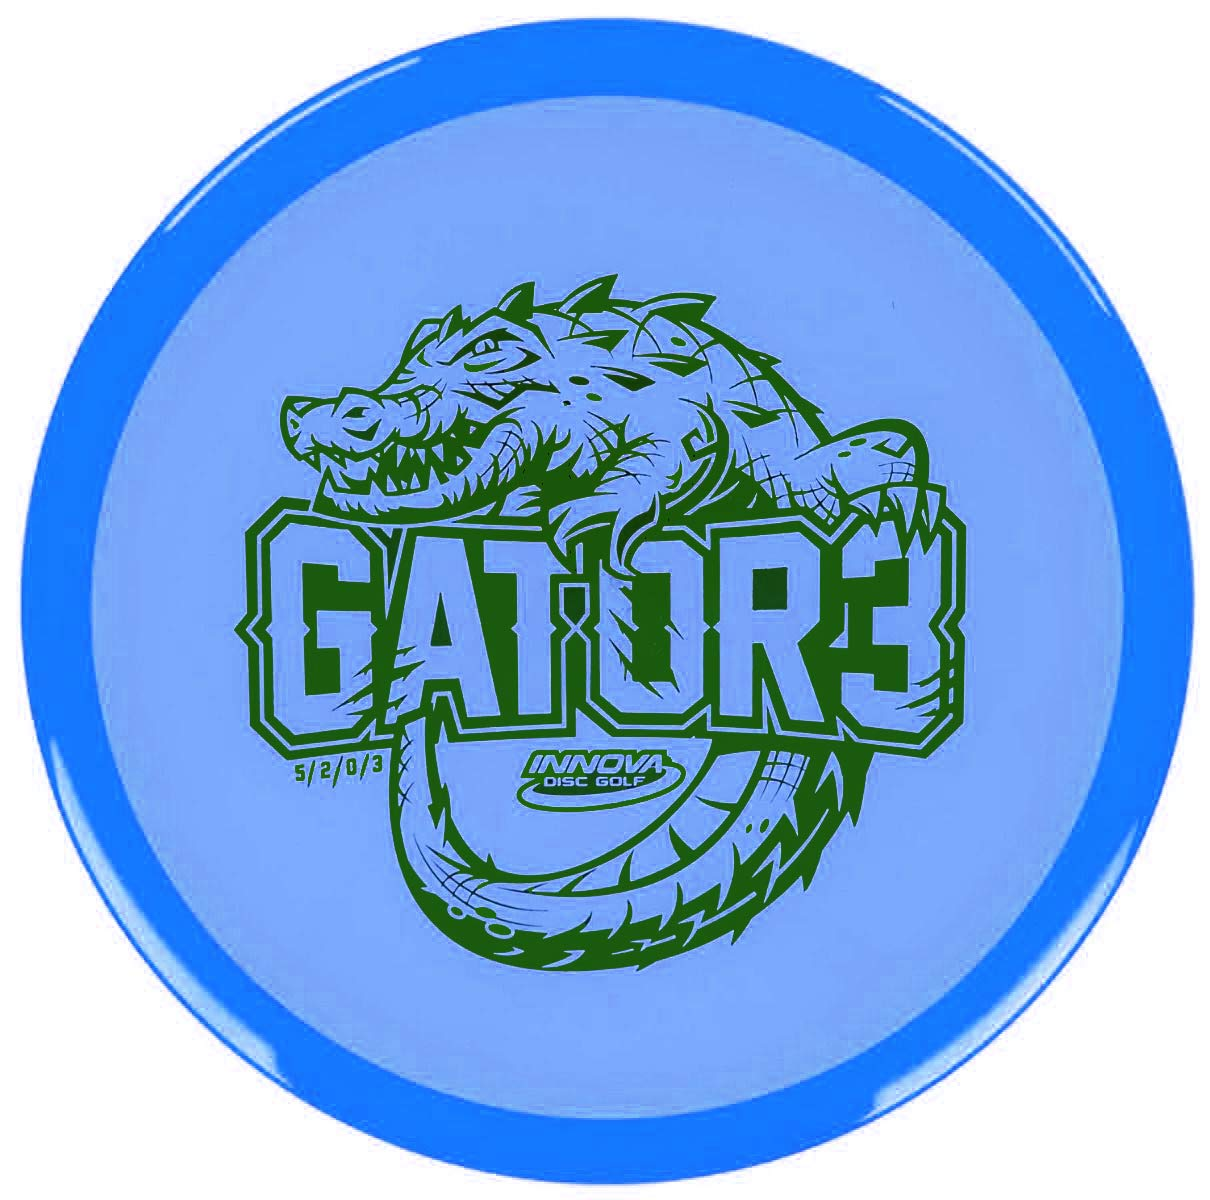 Innova Limited Edition Champion Gator 3 Mid-Range Disc Golf 173-175g (Colors Will Vary) by Innova Discs